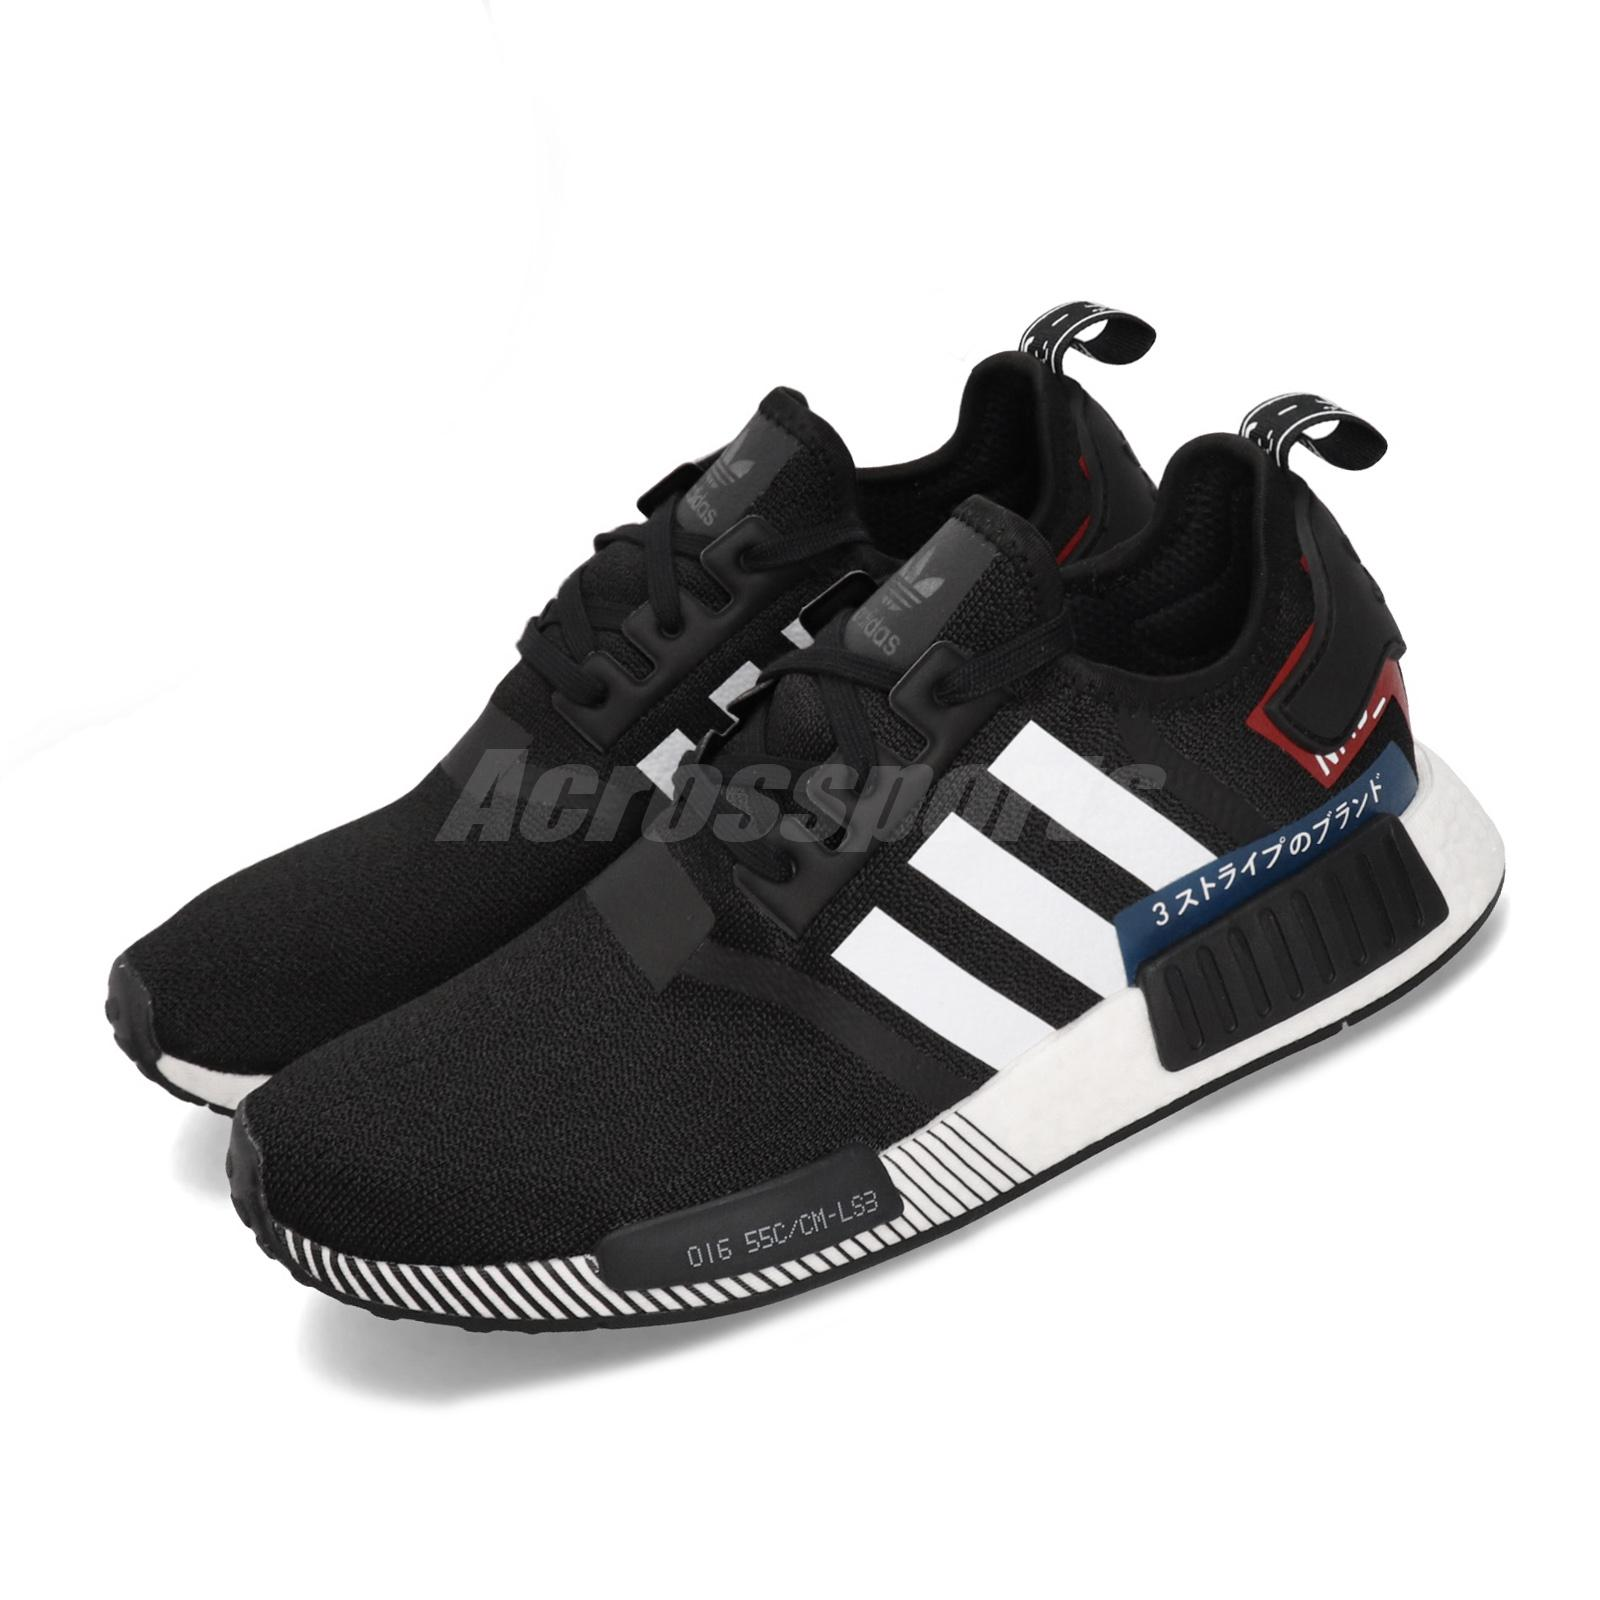 Adidas NMD Boost Stretch Knit Sneaker Black Men Shoes Shopby